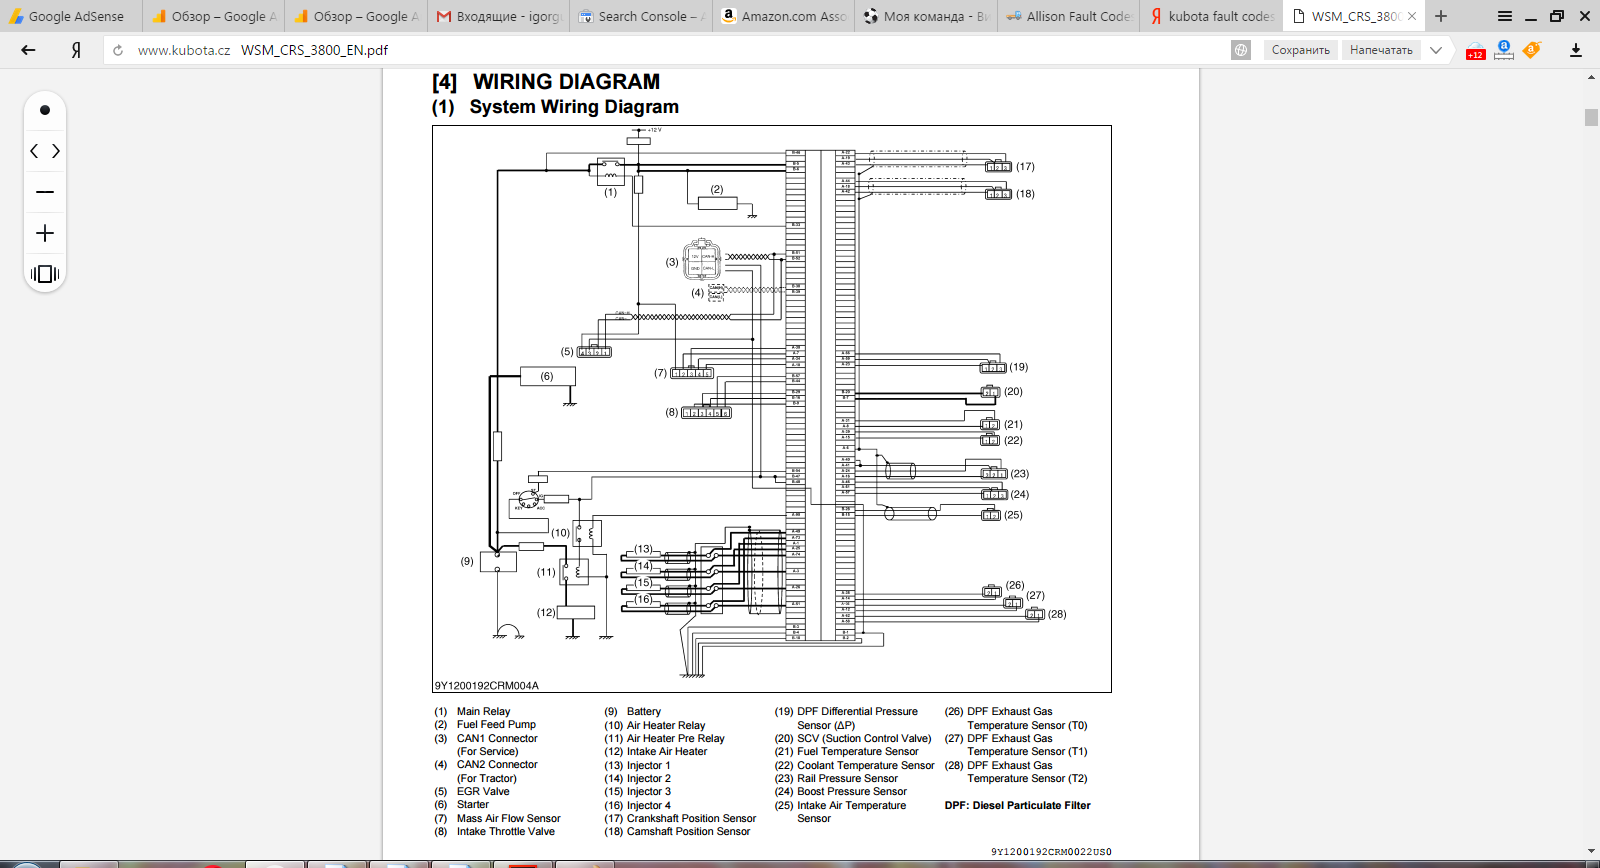 Kubota+V3600+Wiring+Diagram?t=1495350576 kubota tractor manuals pdf & wiring diagrams truck, tractor kubota wiring diagram pdf at edmiracle.co